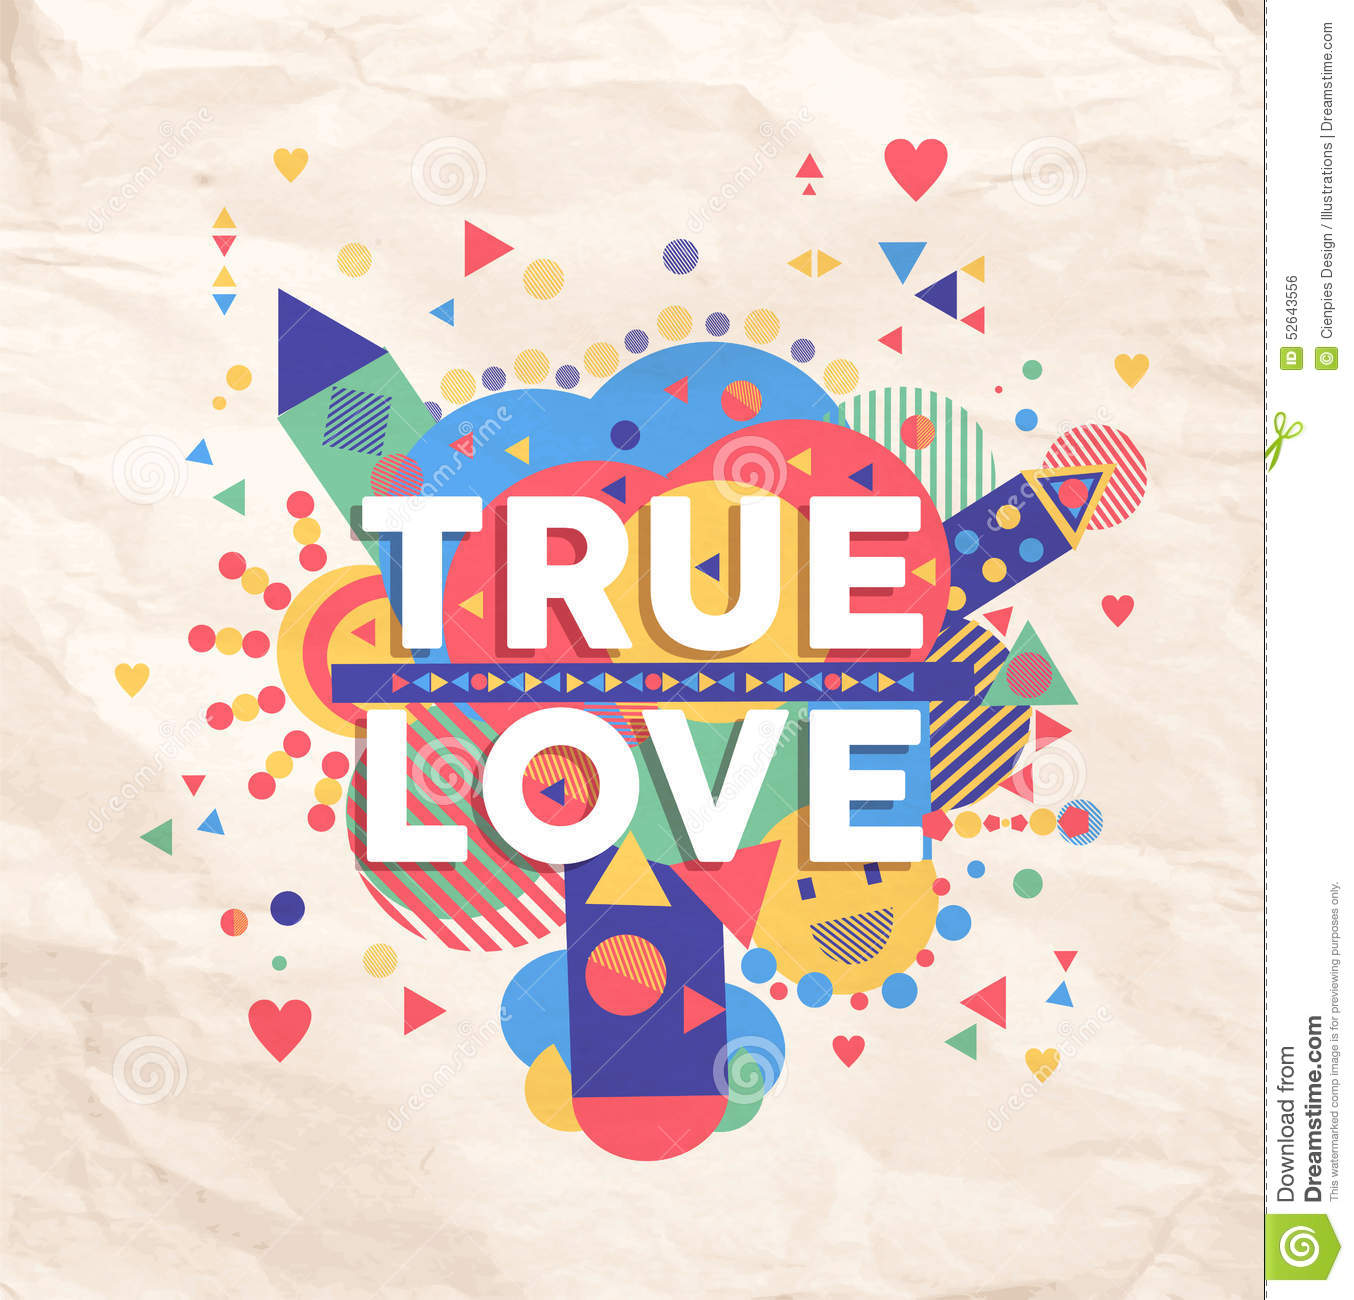 True Love Quote Poster Design Illustration 52643556 Megapixl